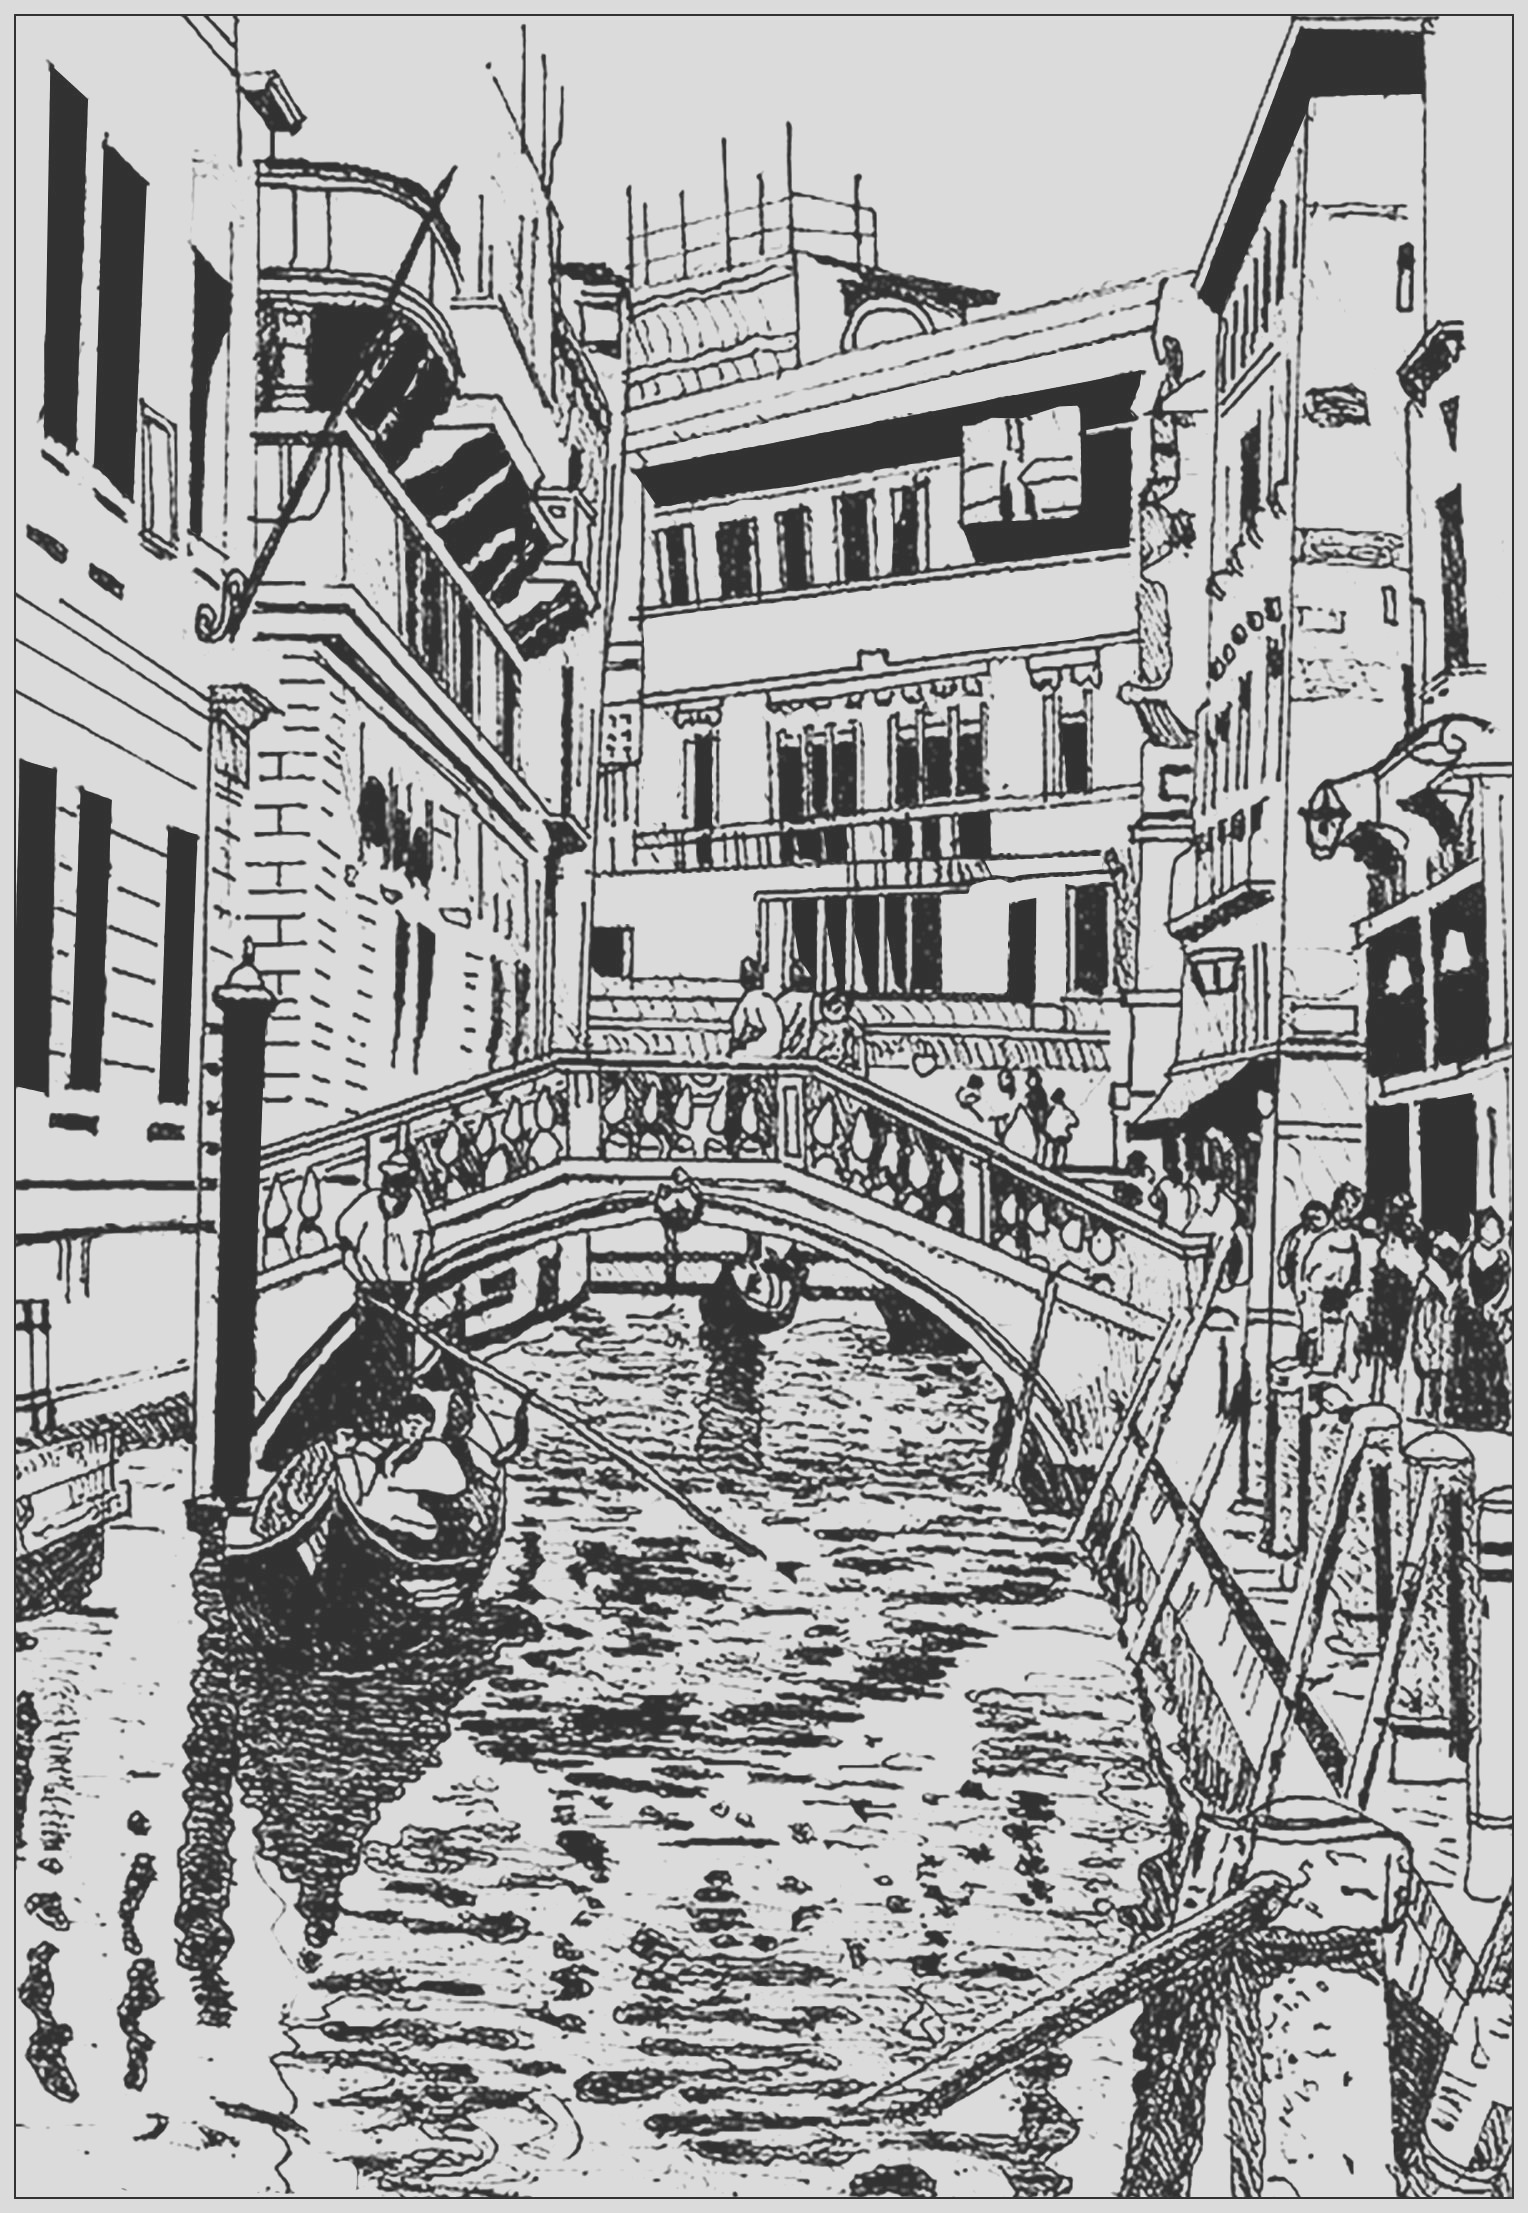 image=architecture home coloring page venice drawing 1